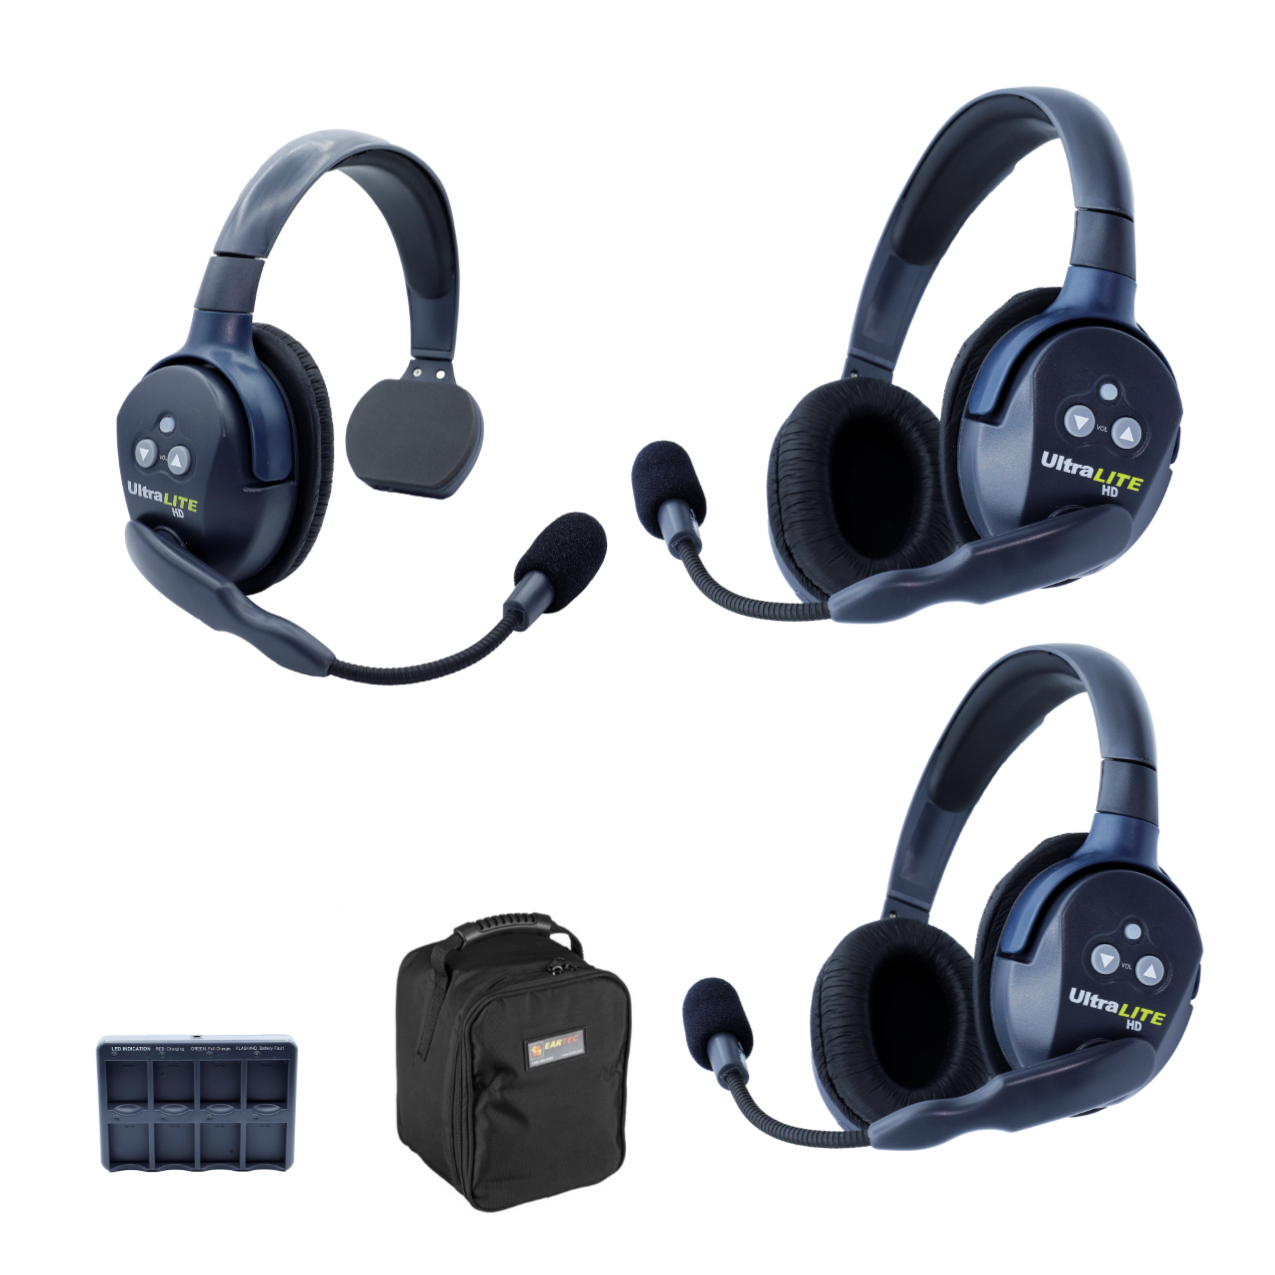 Eartec UL312 Ultralite HD 3 Person System W/ 1 Single 2 Double Headsets, Batteries, Charger & Case Wireless Intercom [tag]